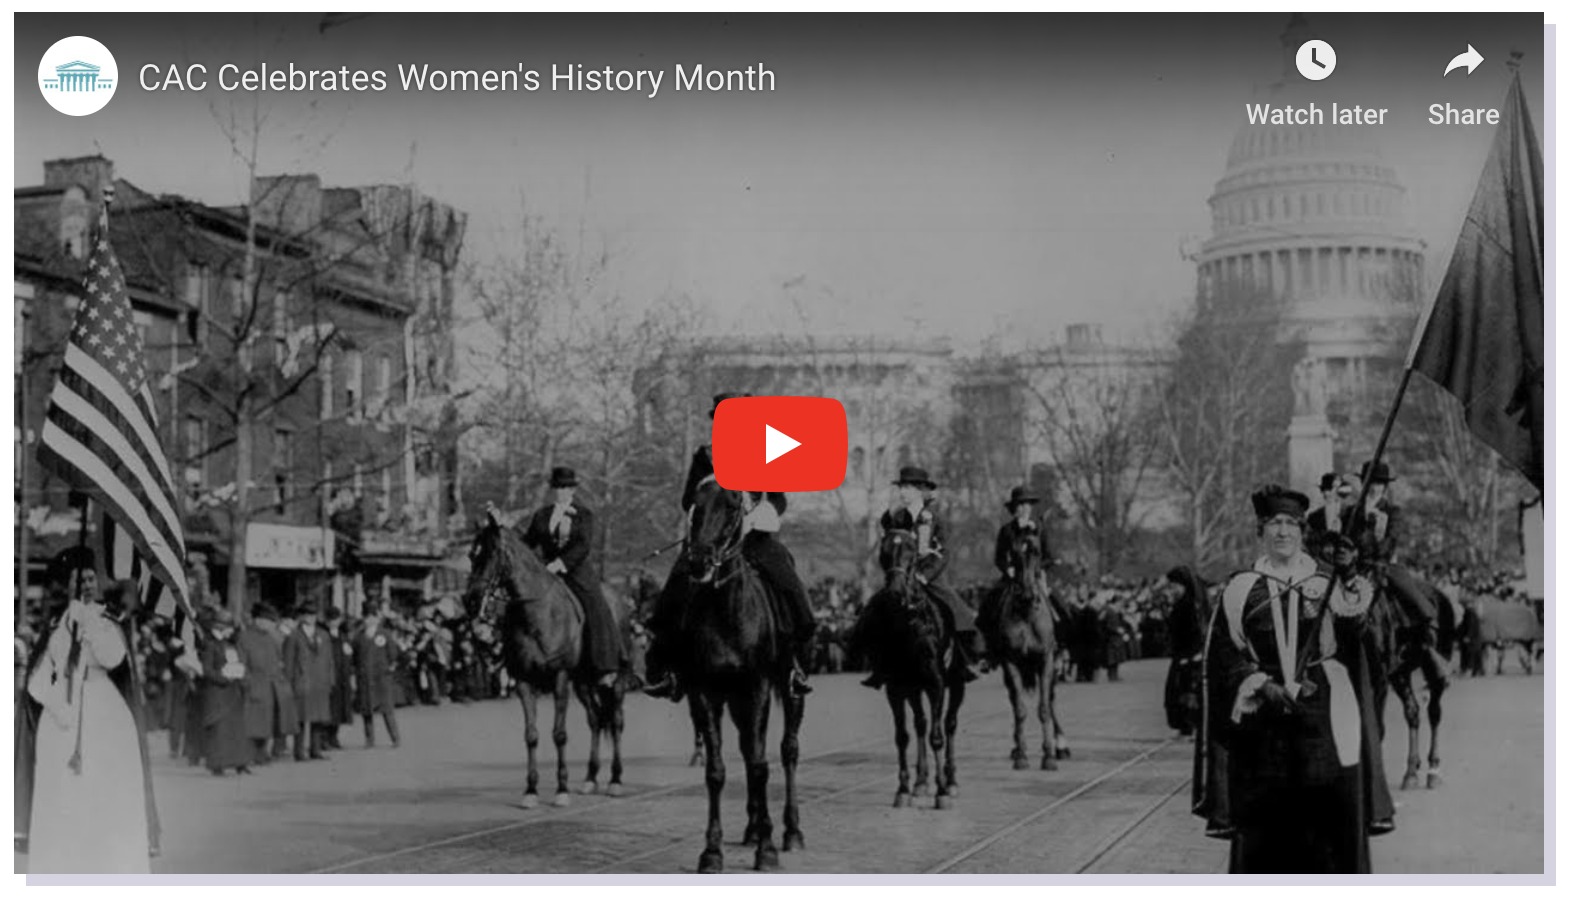 Women's History Month video screenshot